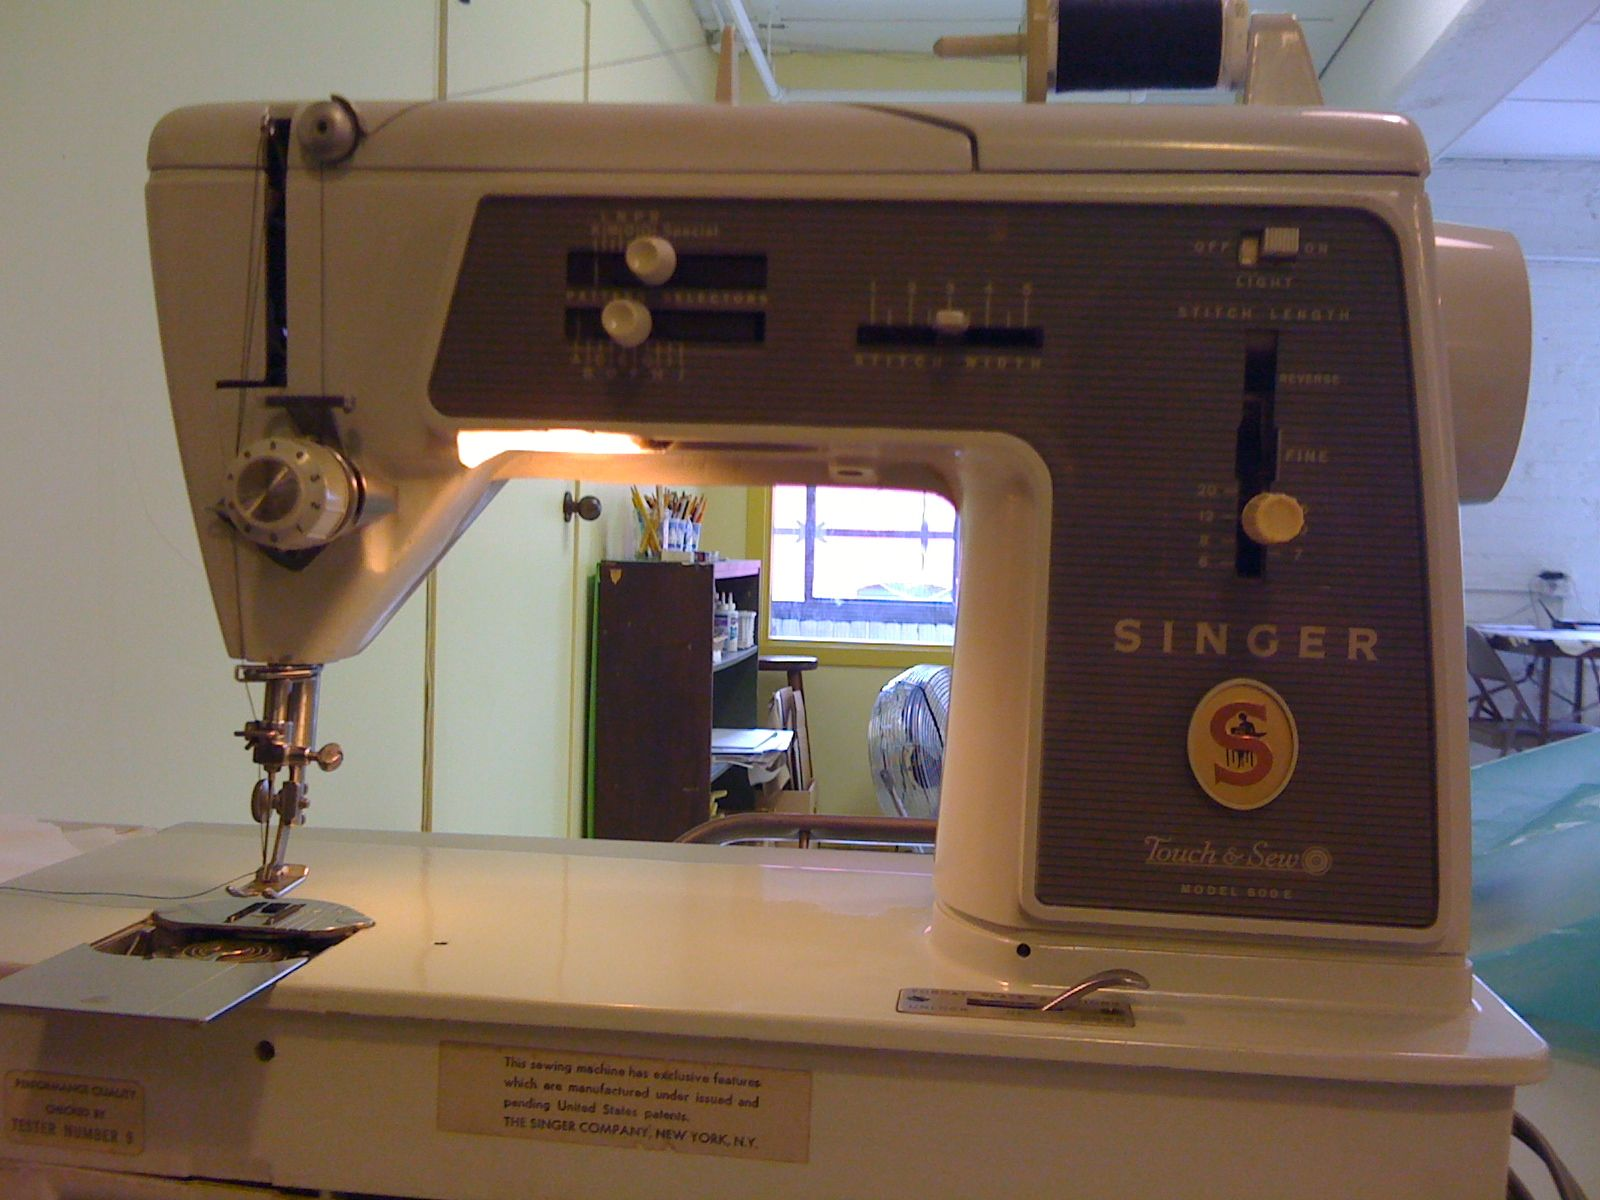 I am so glad I took pictures of this machine when my student brought it to  class last year! The Singer Touch and Sew was introduced in 1965.